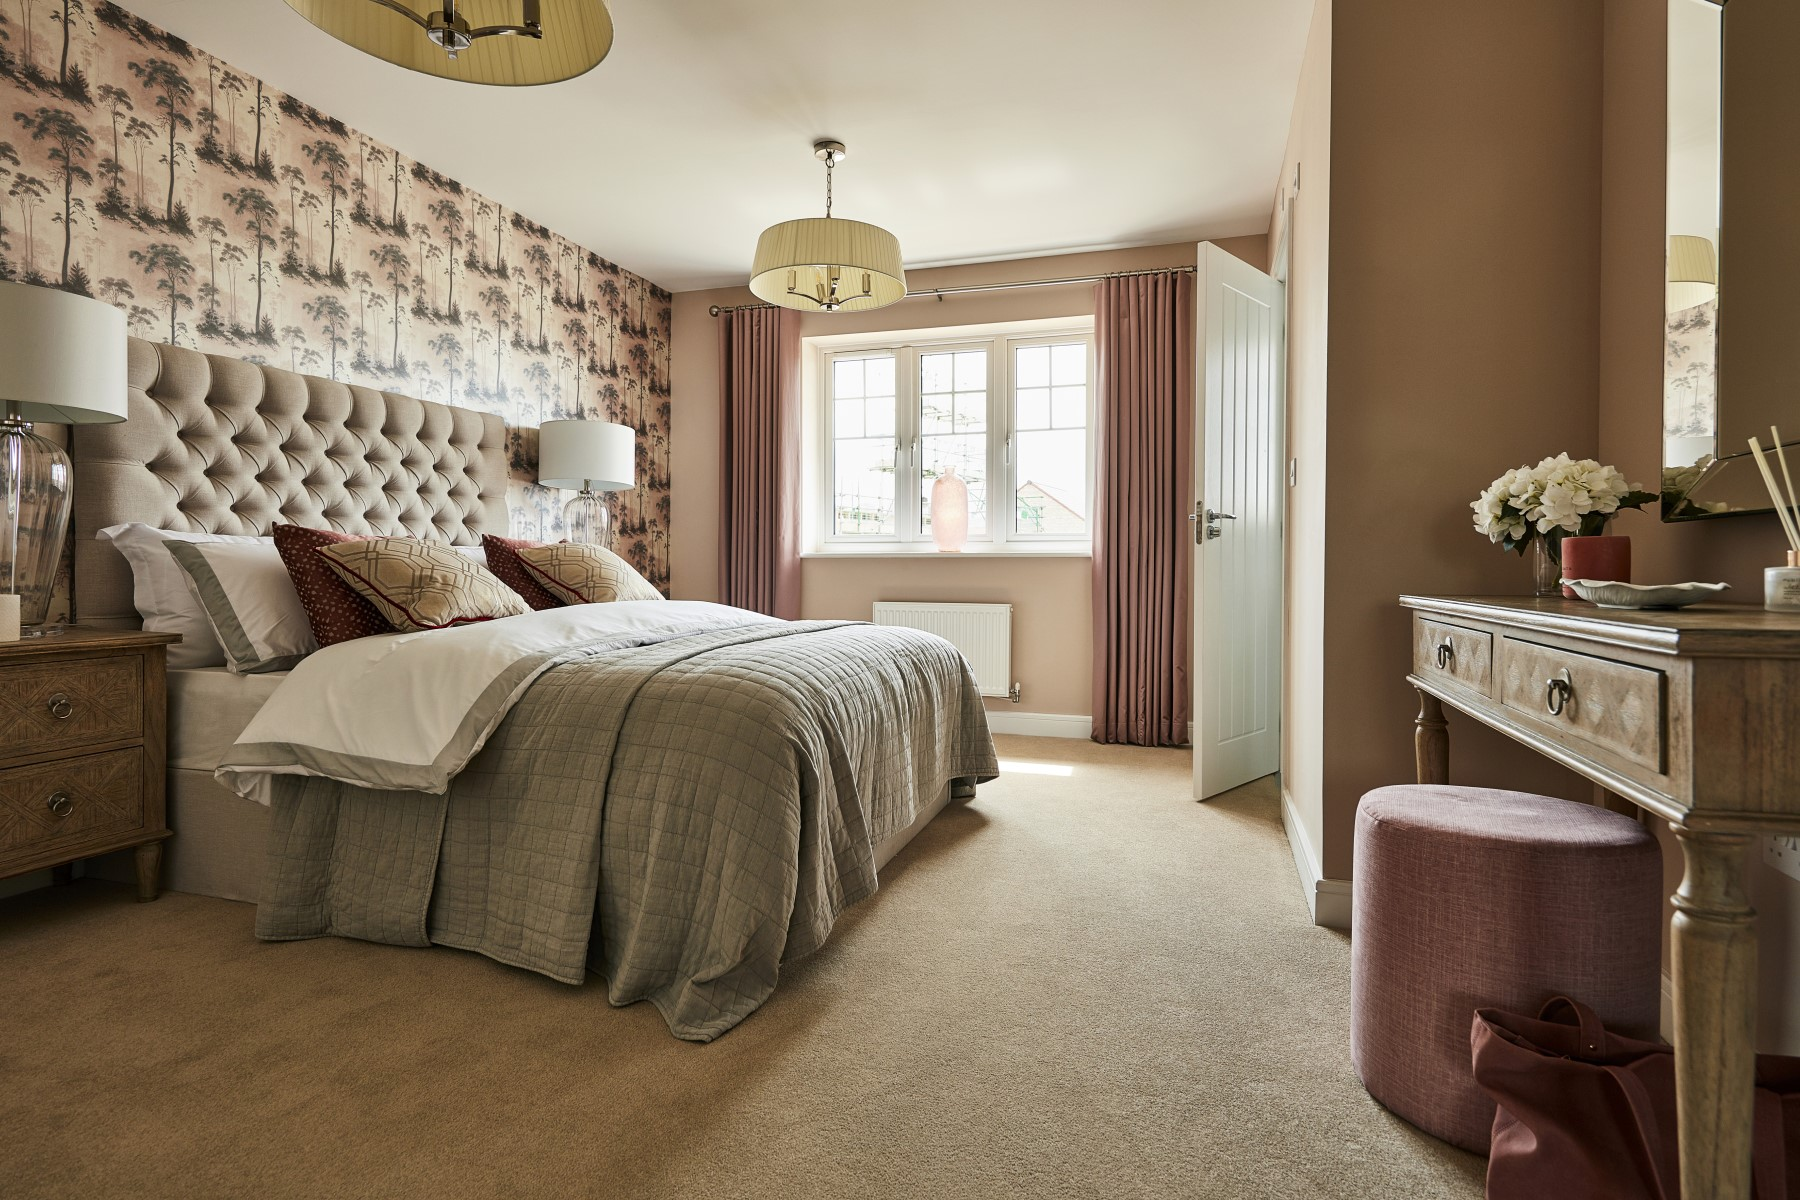 TW OX Thornbury Green Eynsham_NA45_Marford_Main_Bedroom (1)